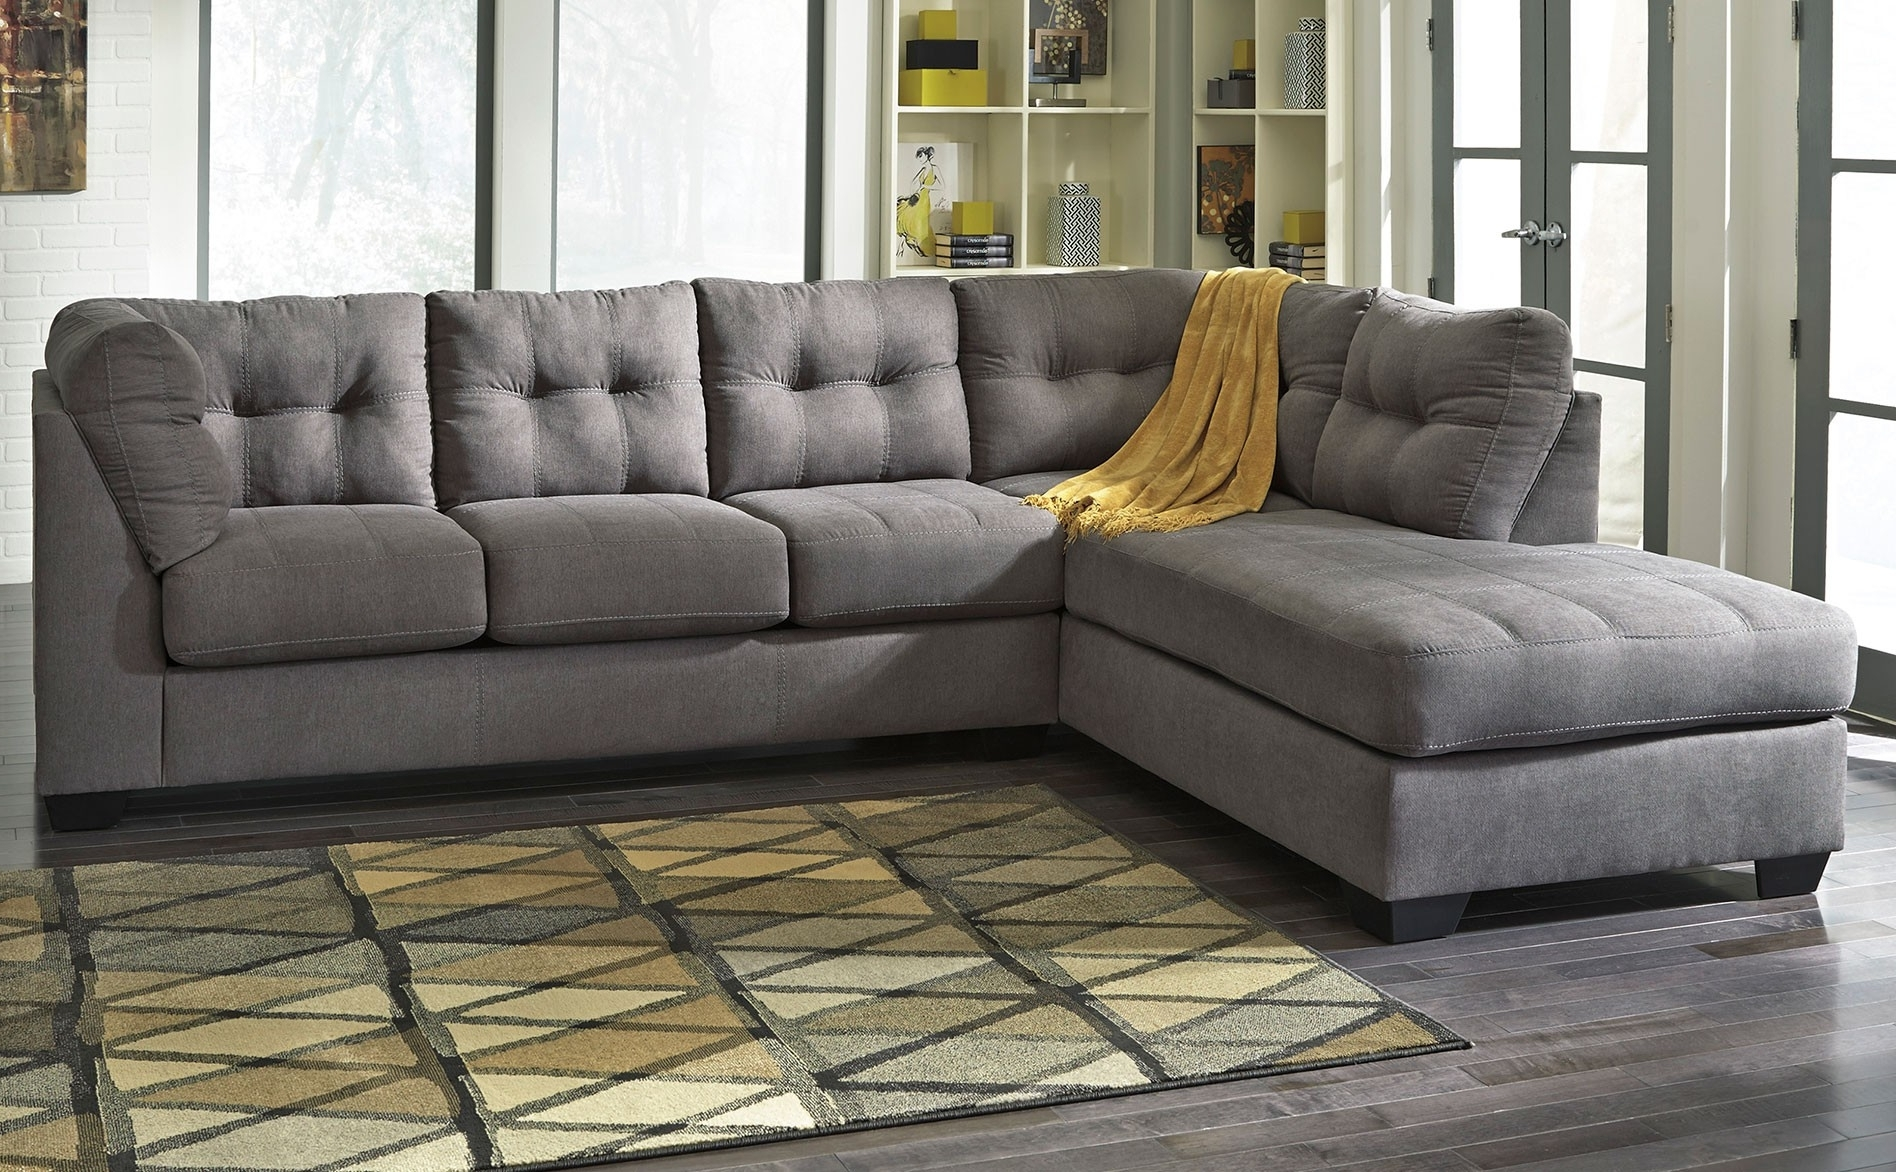 Light Gray Sectional Couch With Wide Chaise And Short Metal Legs With Regard To Latest Charcoal Gray Sectional Sofas With Chaise Lounge (View 5 of 15)